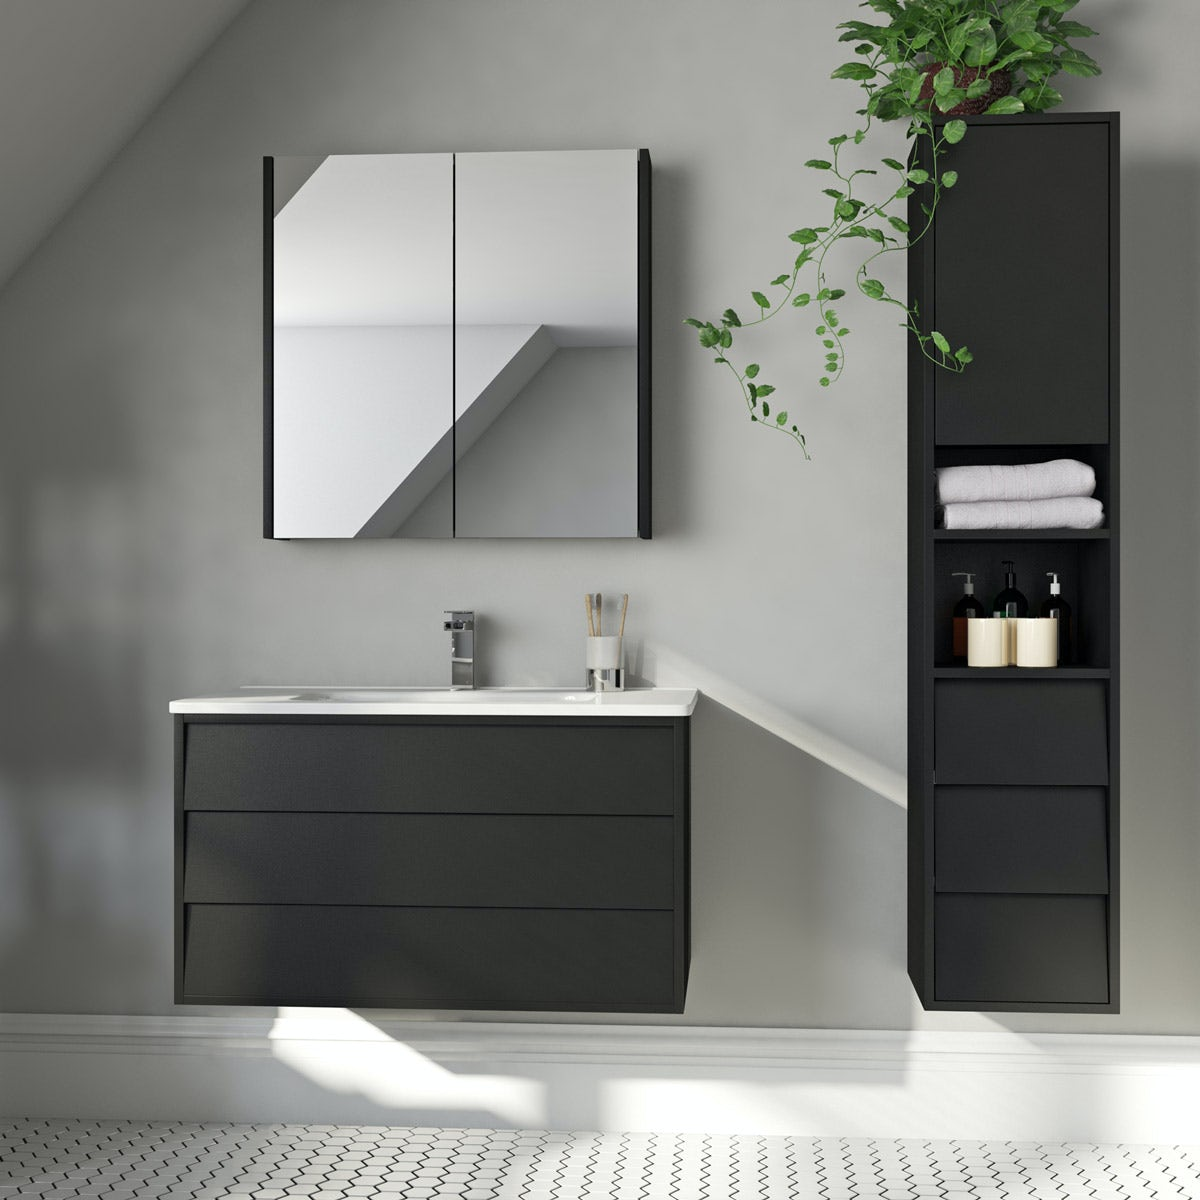 Top Image Bathroom Furniture Packages